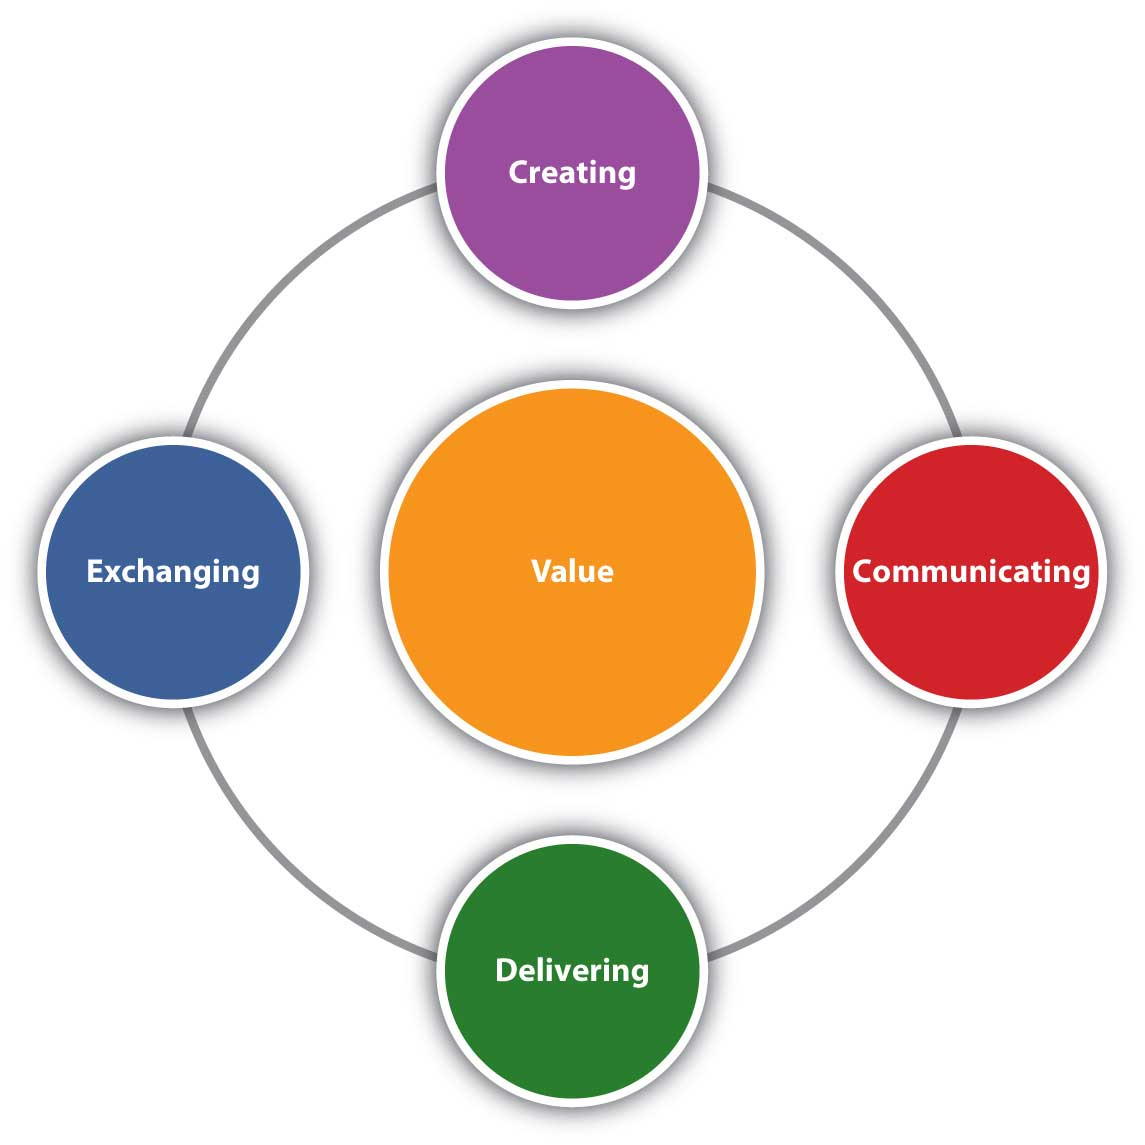 Marketing is composed of four activities centered on customer value: creating, communicating, delivering, and exchanging value.